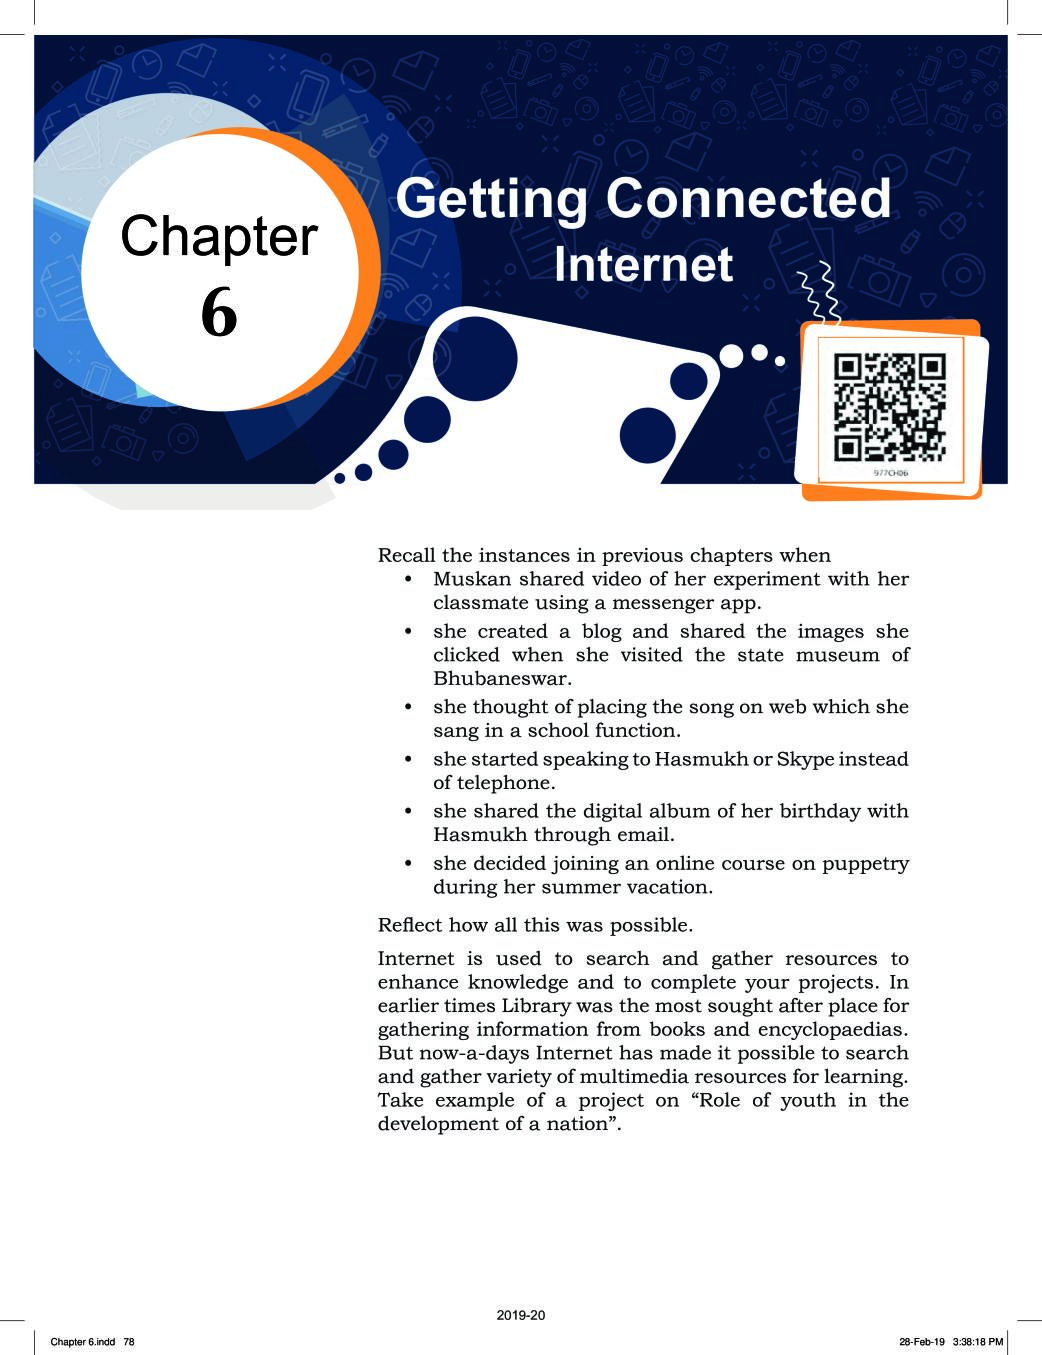 NCERT Book Class 9 ICT Chapter 6 Getting Connected: Internet